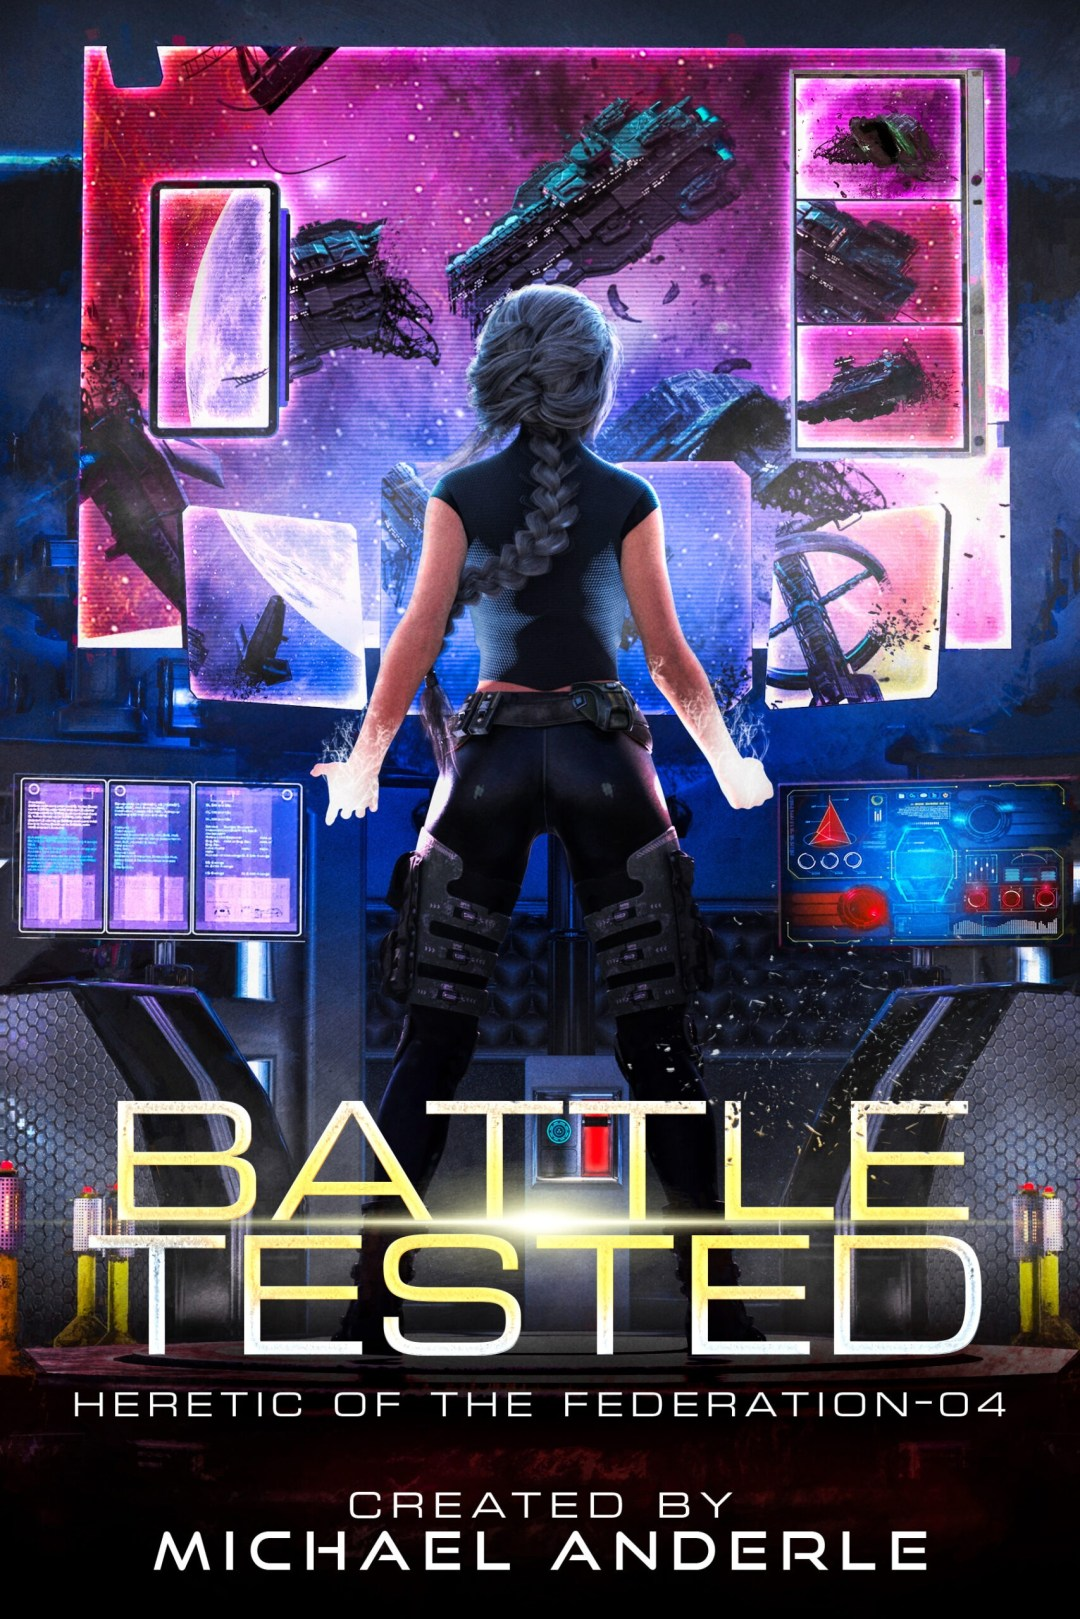 Battle tested e-book cover